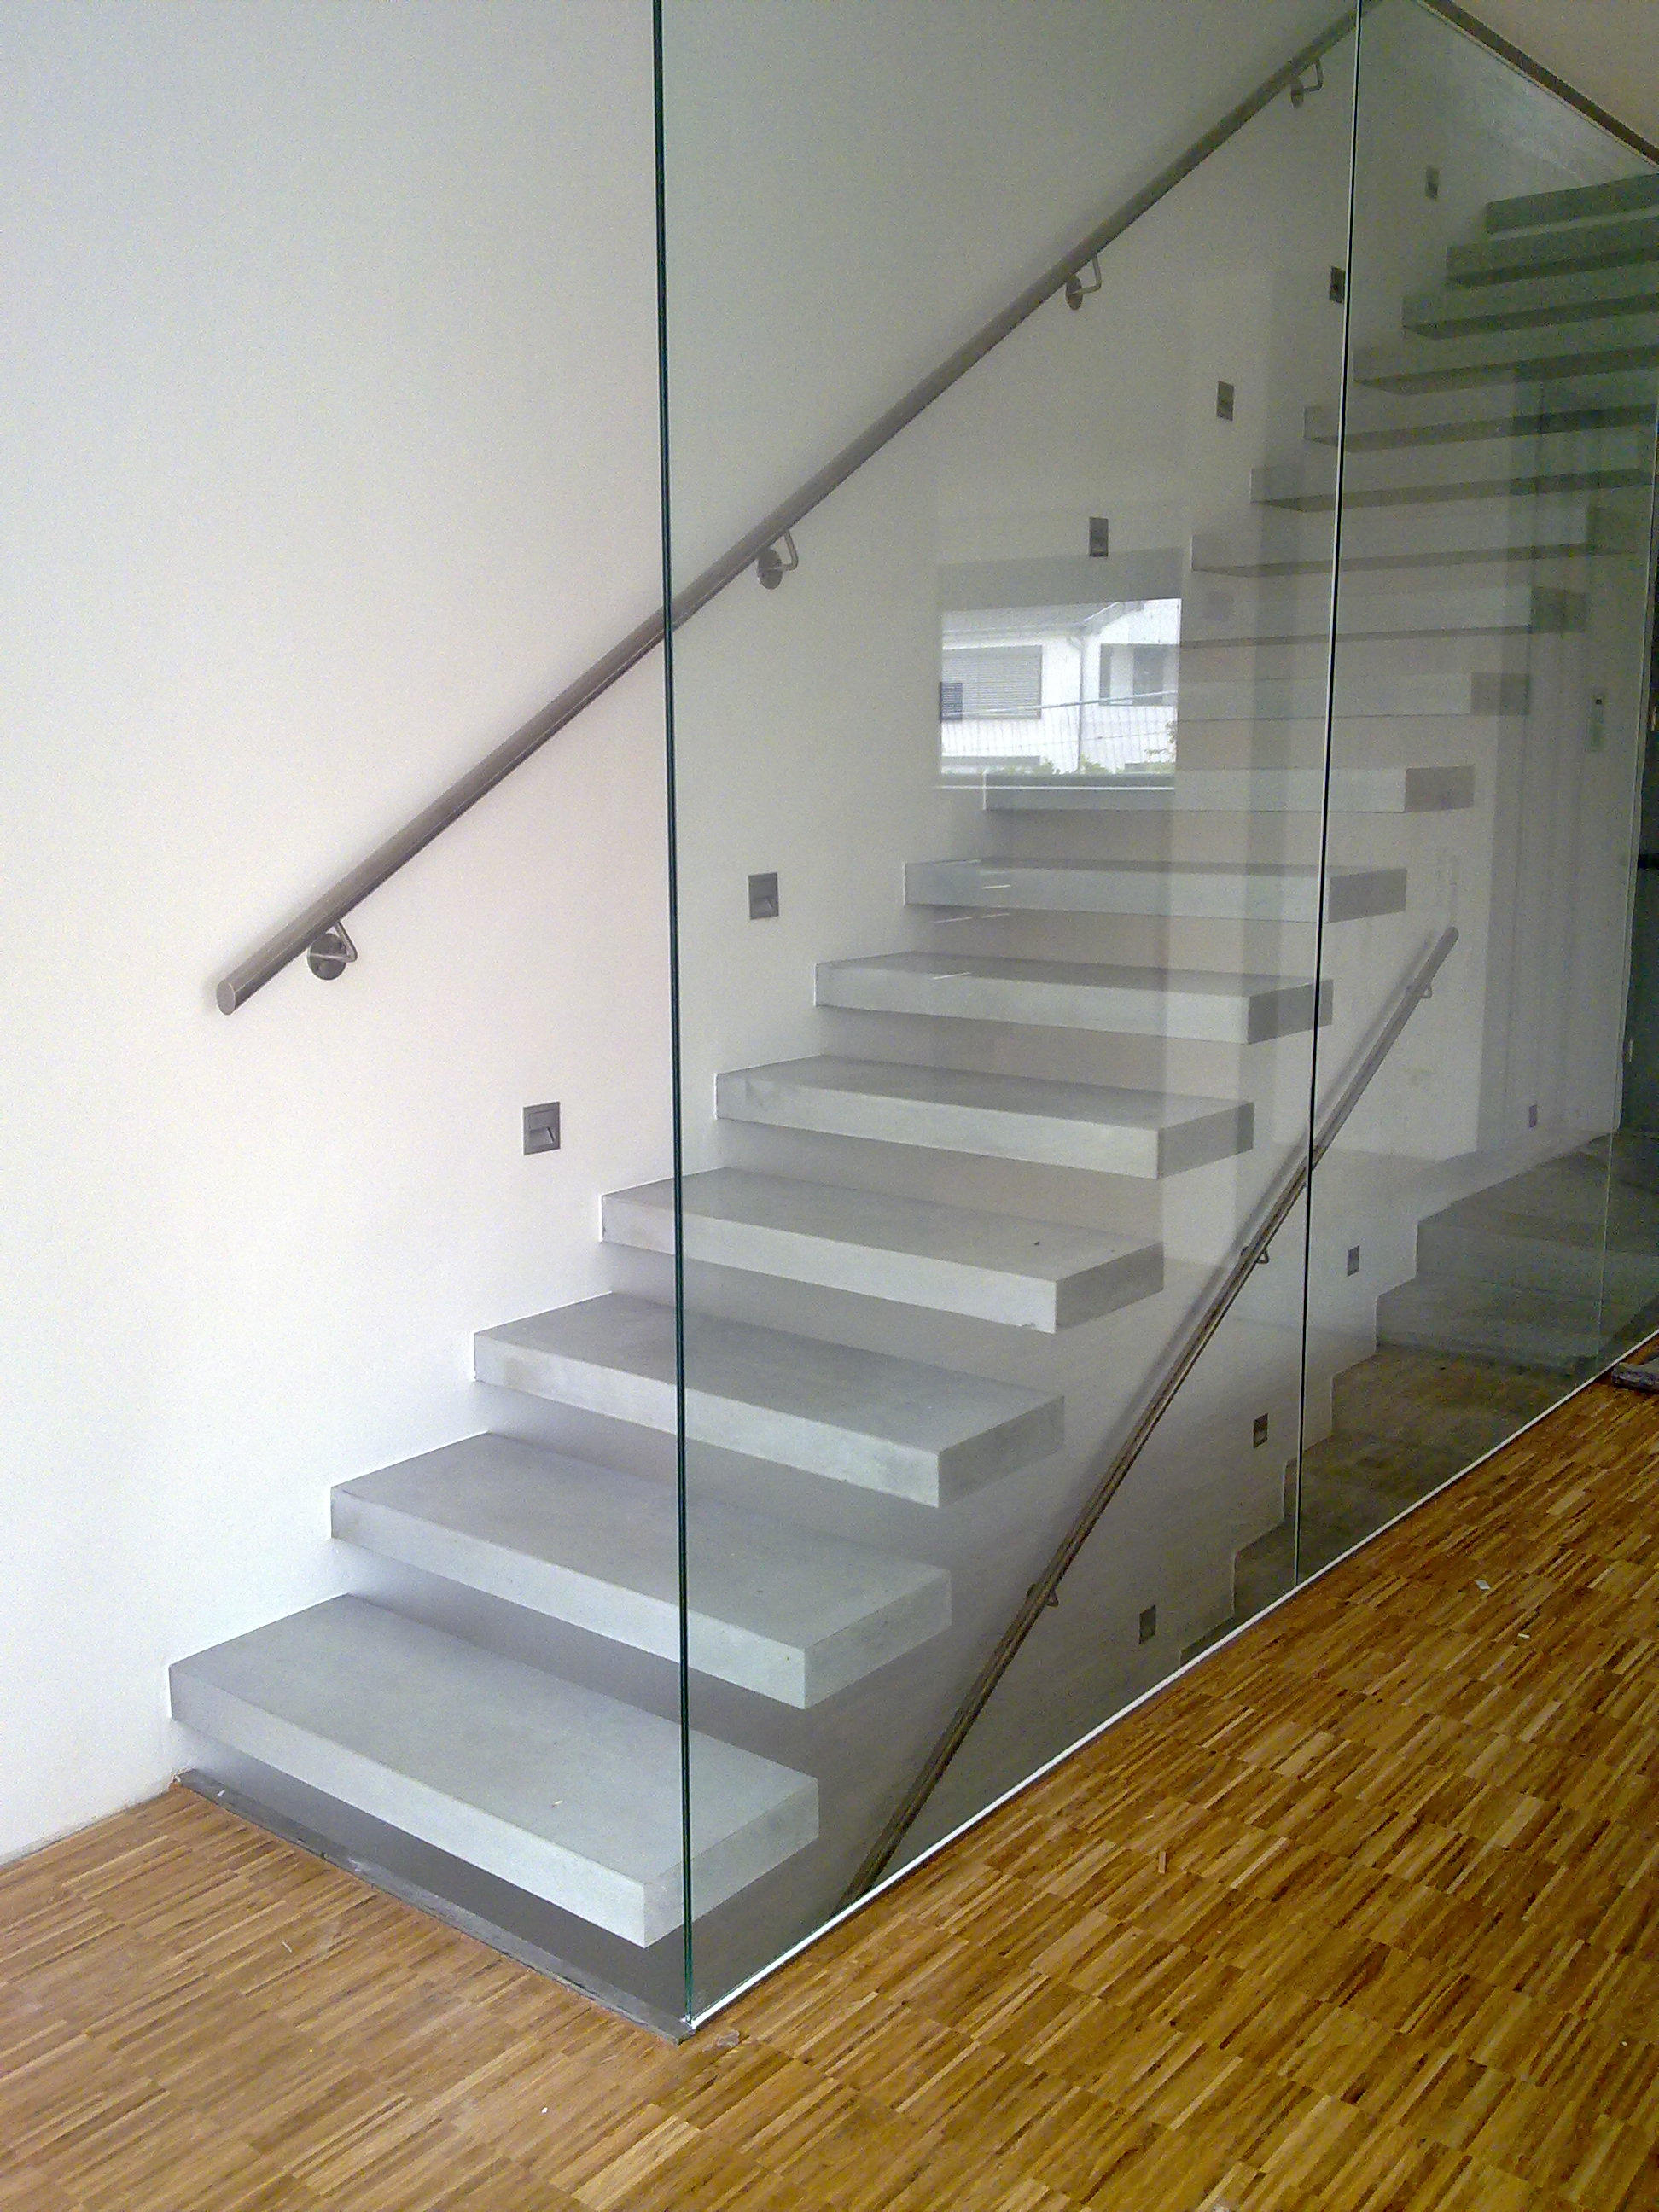 Covering Concrete Steps Precast : Cantilevered stairs in concrete staircase systems from